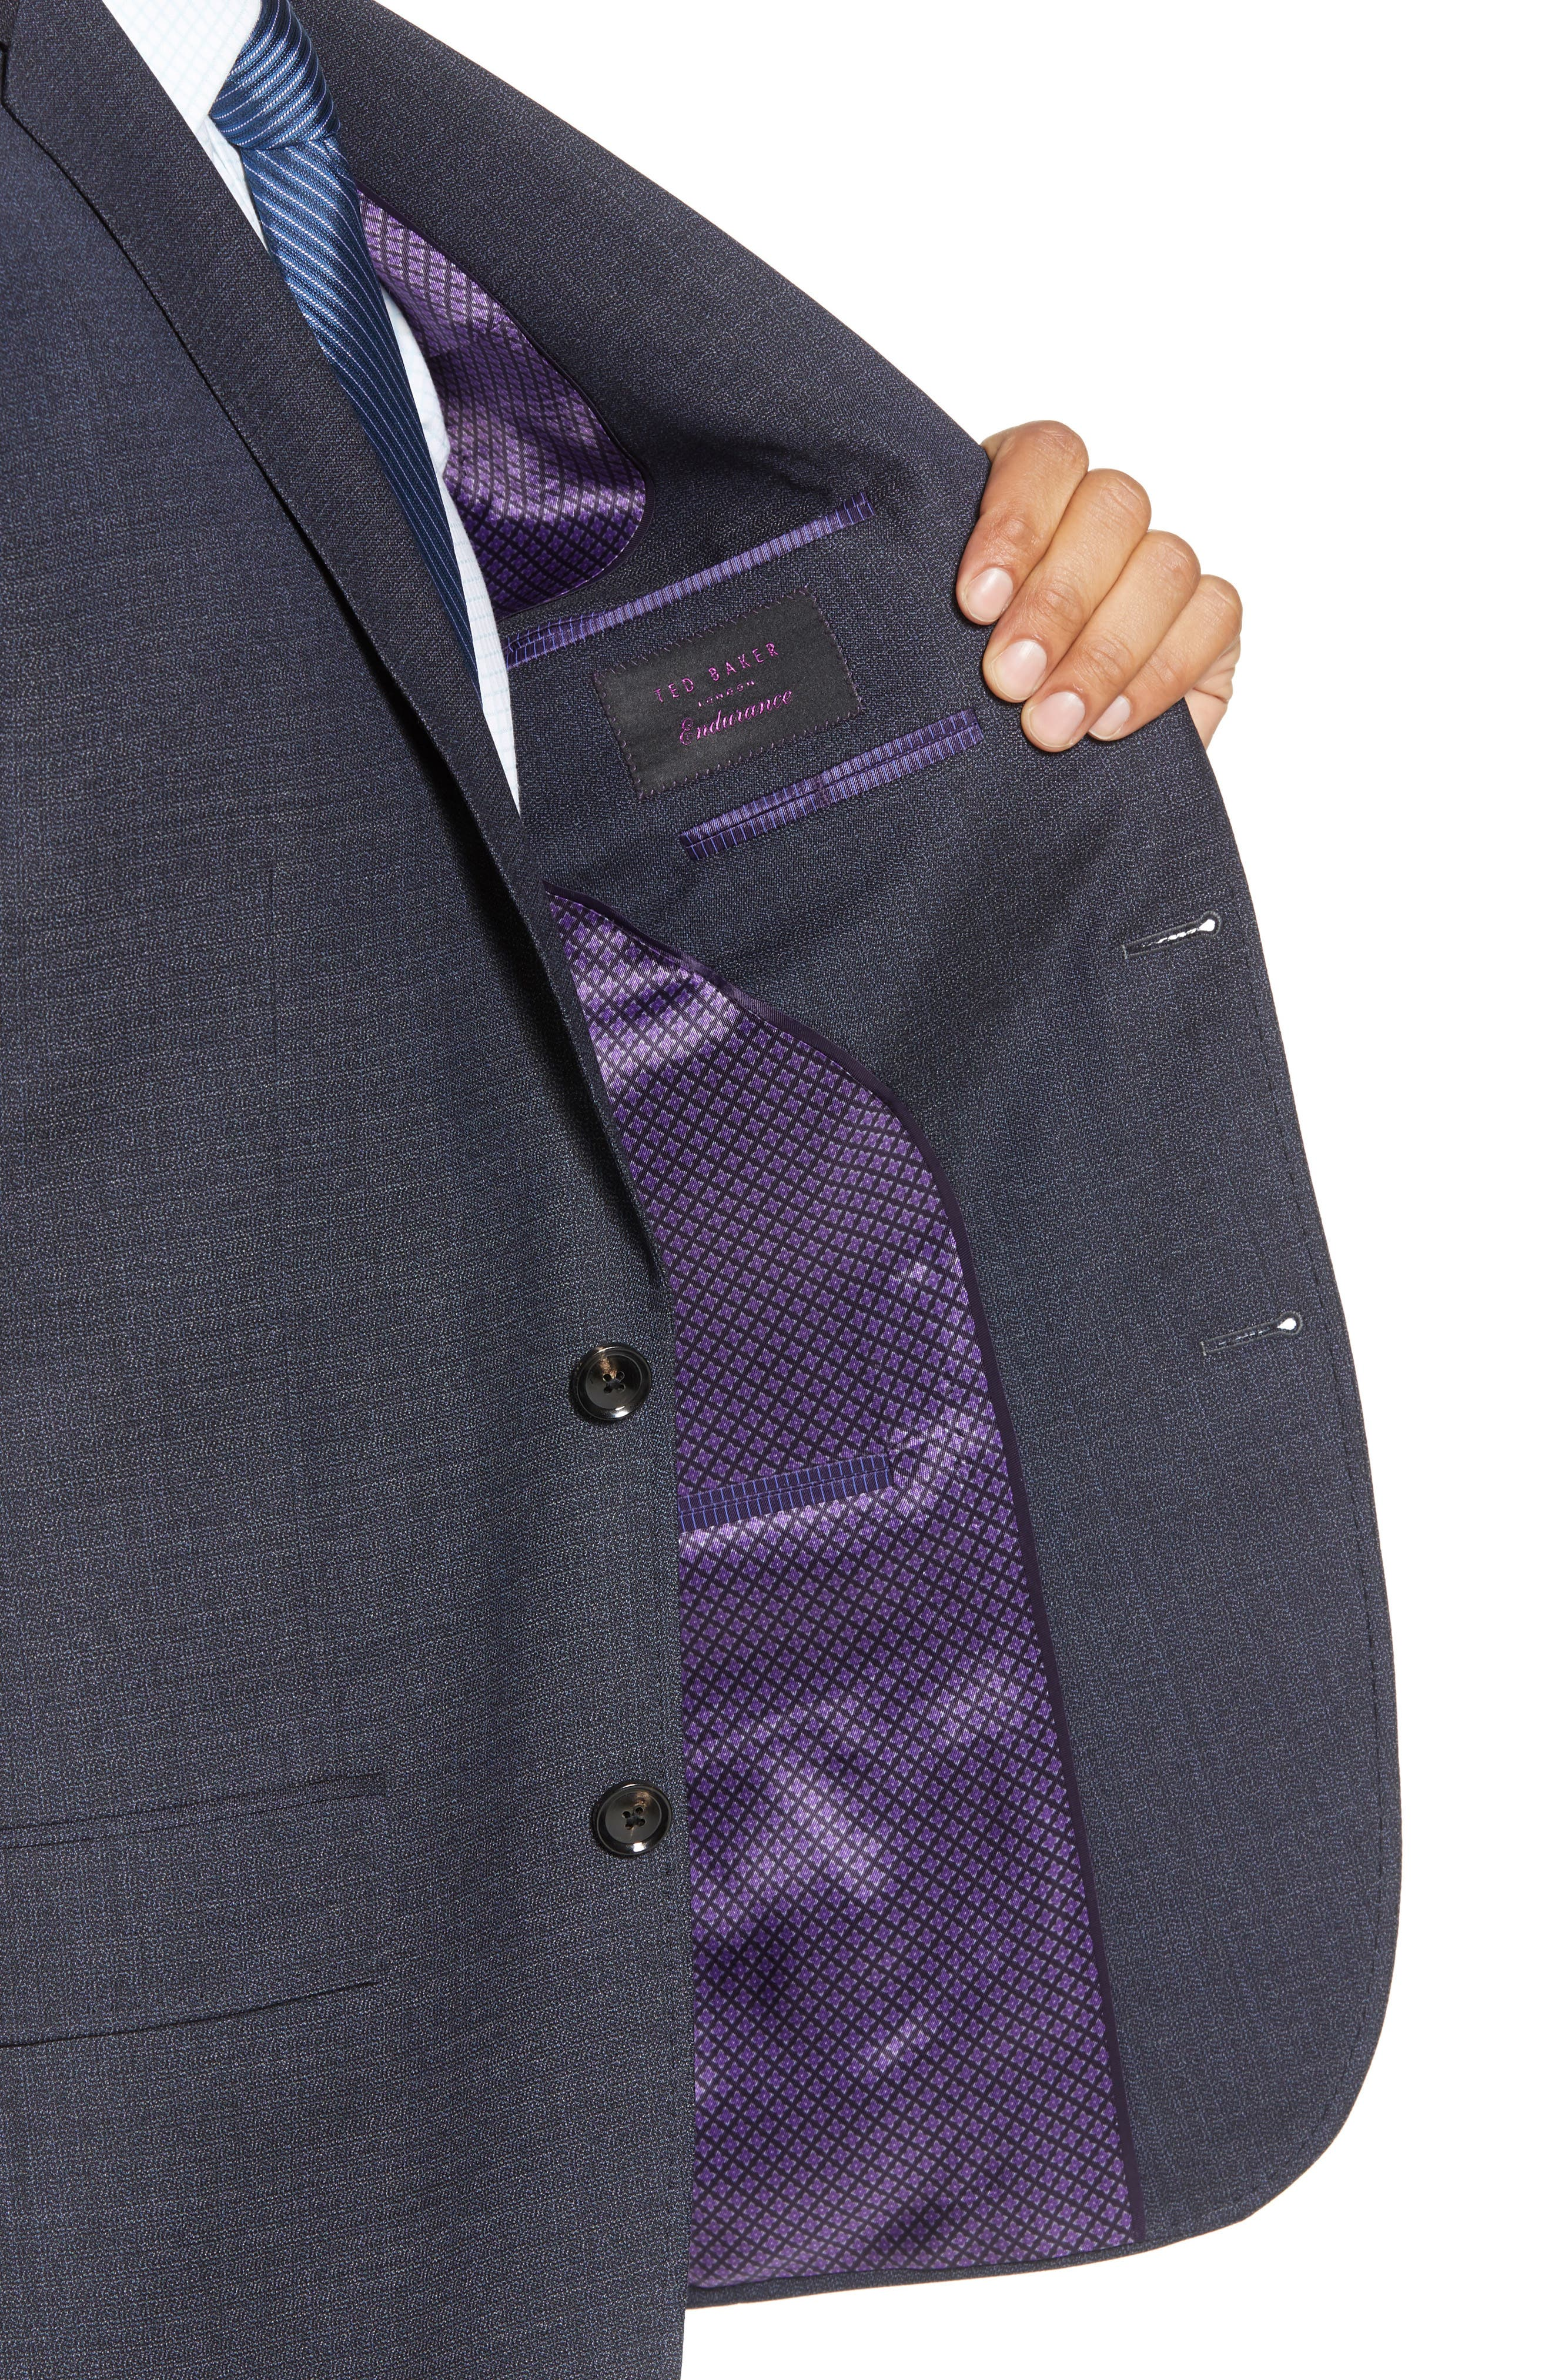 Jay Trim Fit Solid Wool Suit,                             Alternate thumbnail 4, color,                             020